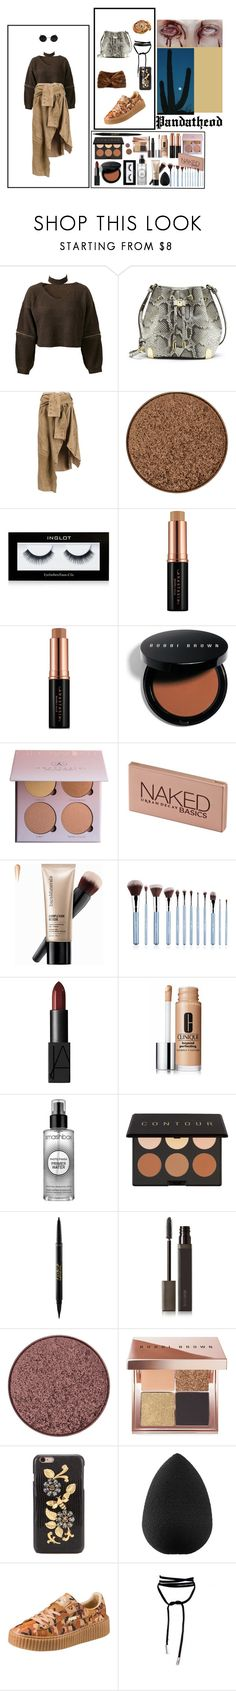 """Fall Wolves Style"" by pandatheod ❤ liked on Polyvore featuring Chicnova Fashion, Vince Camuto, Faith Connexion, Anastasia Beverly Hills, Inglot, Bobbi Brown Cosmetics, Urban Decay, Bare Escentuals, Sigma and NARS Cosmetics"